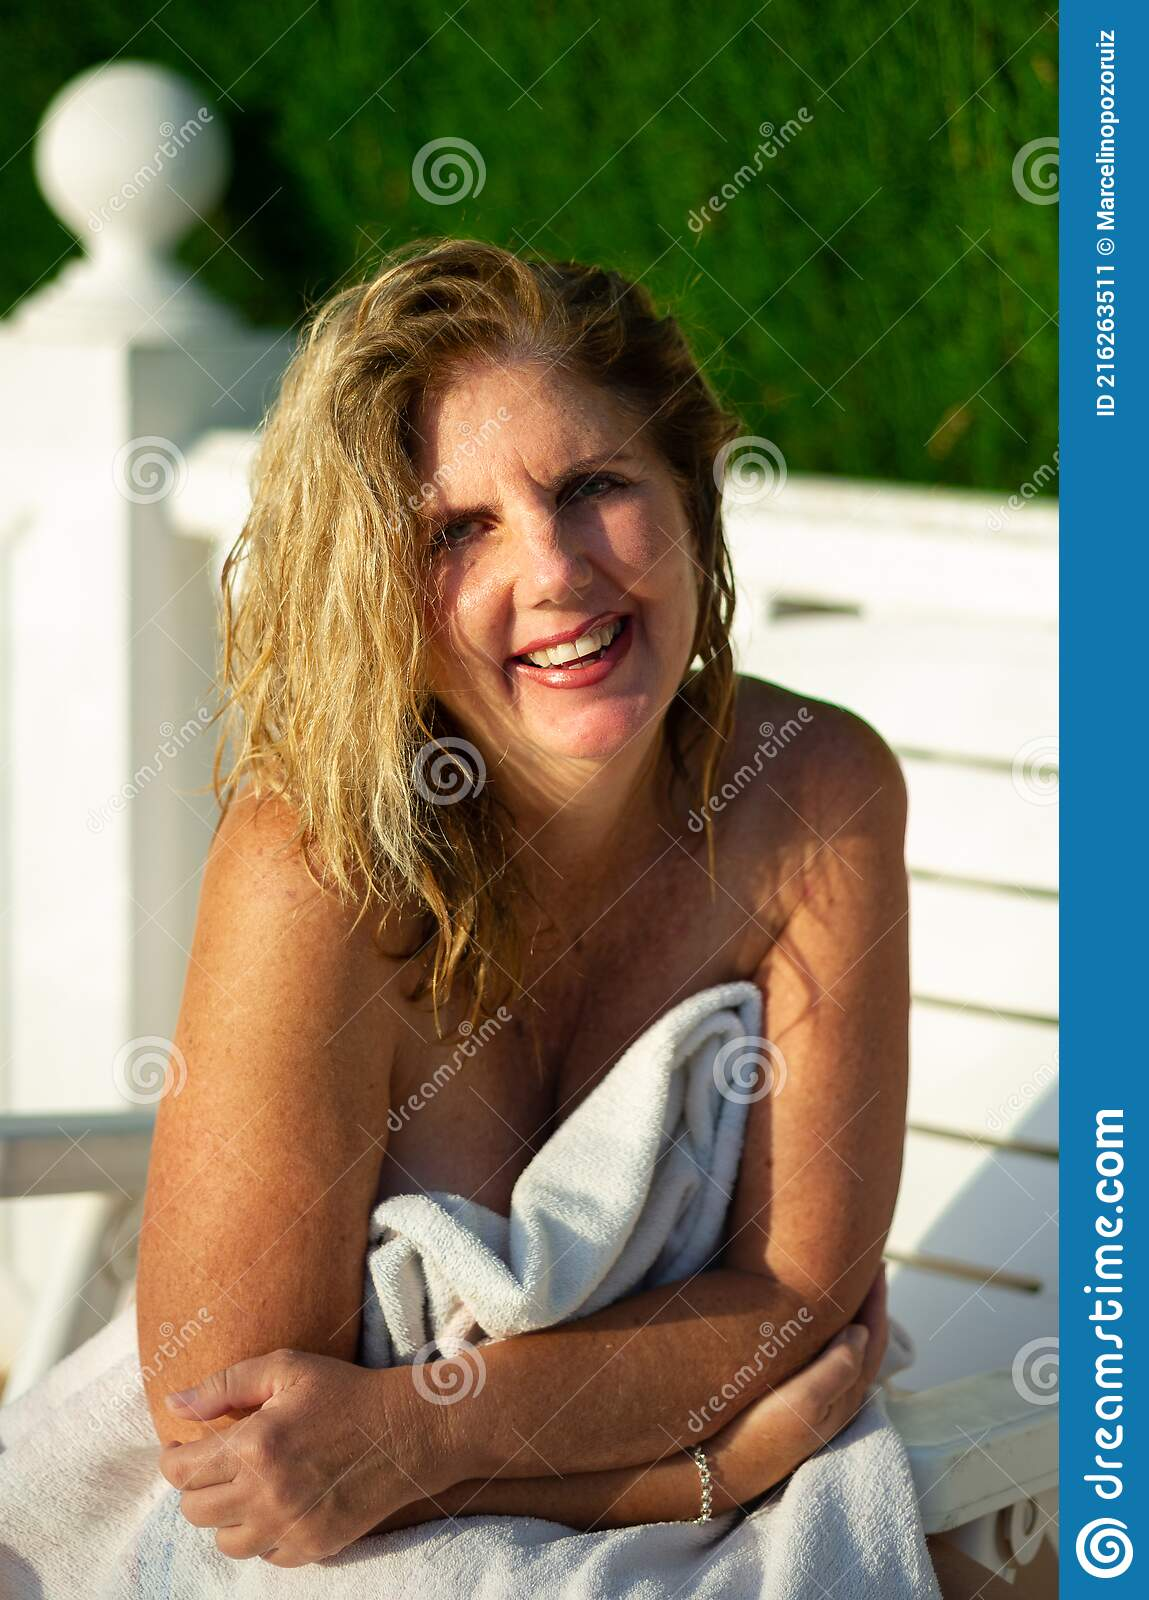 Women nice mature The Most